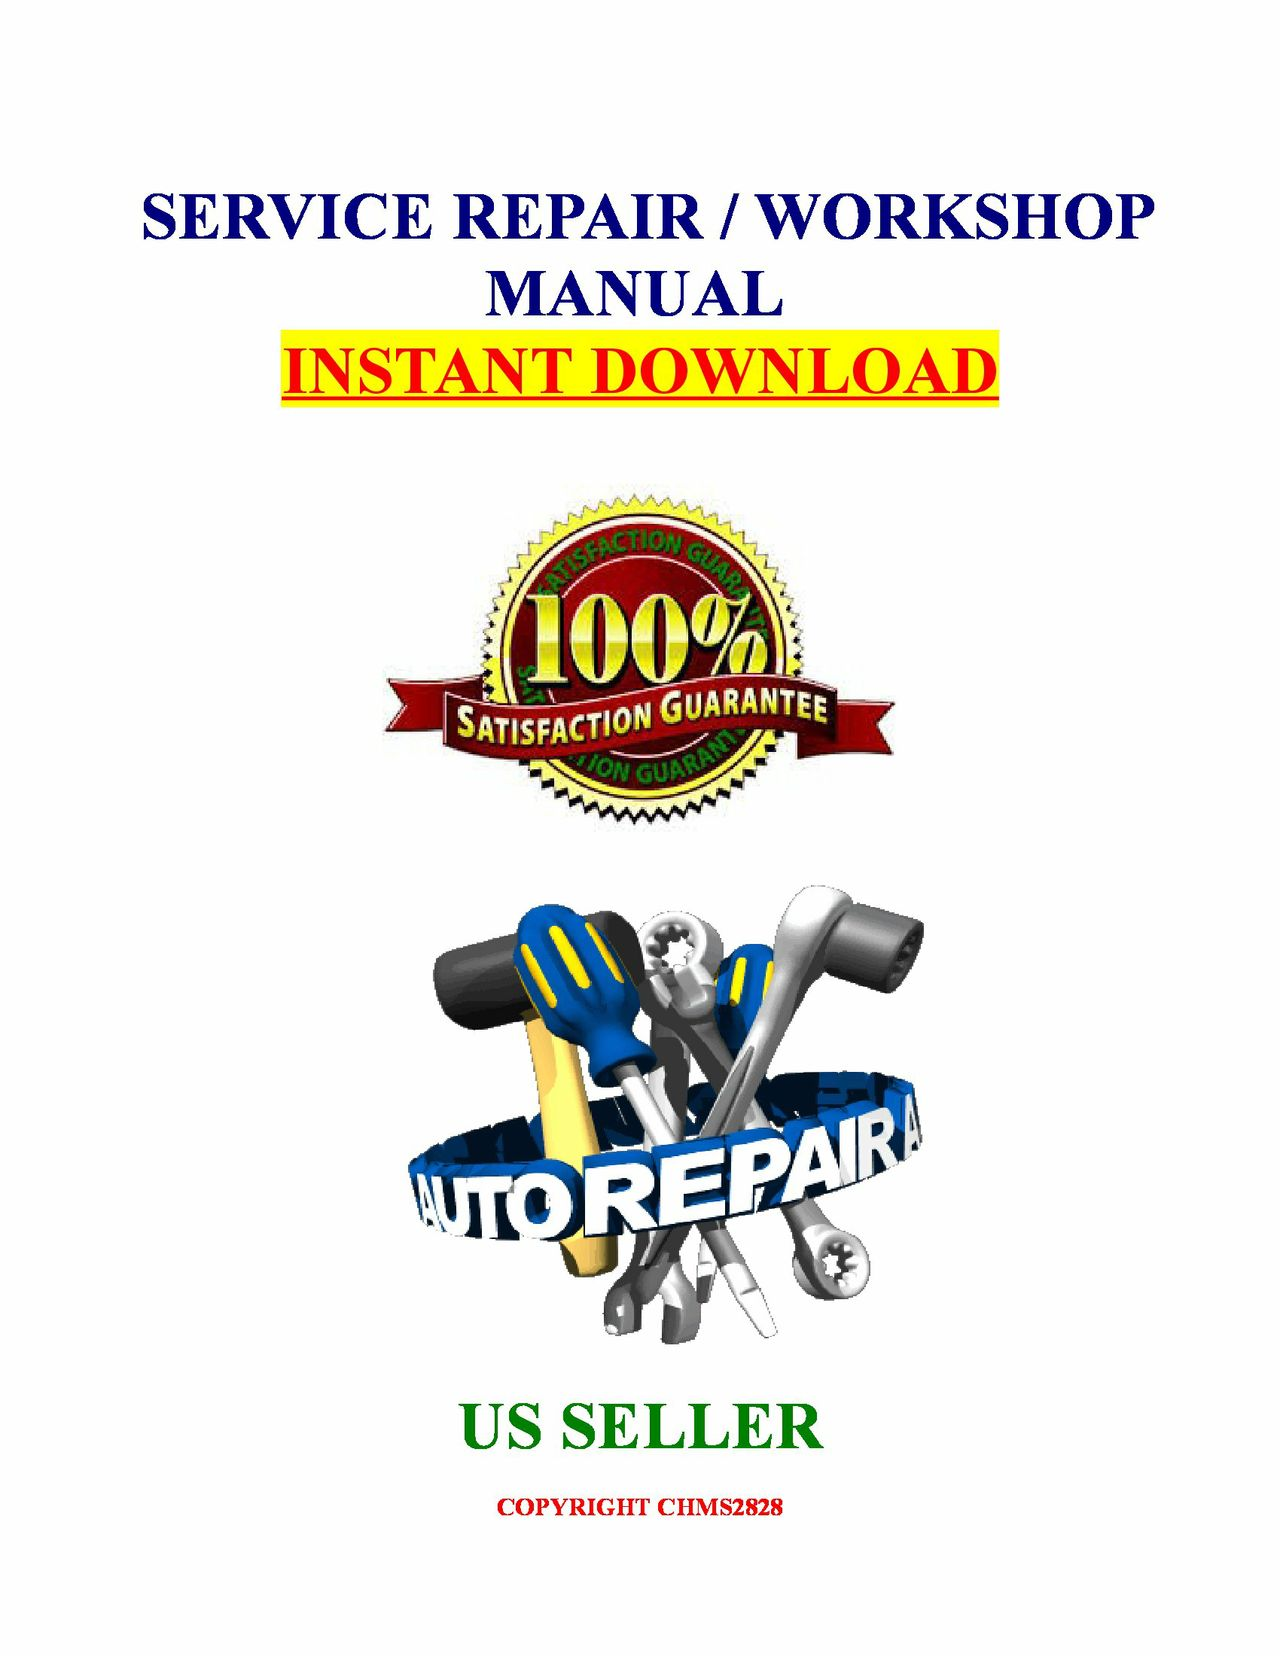 Suzuki RMZ450 RMZ 450 2005 2006 2007 Motorcycle Service Repair Manual